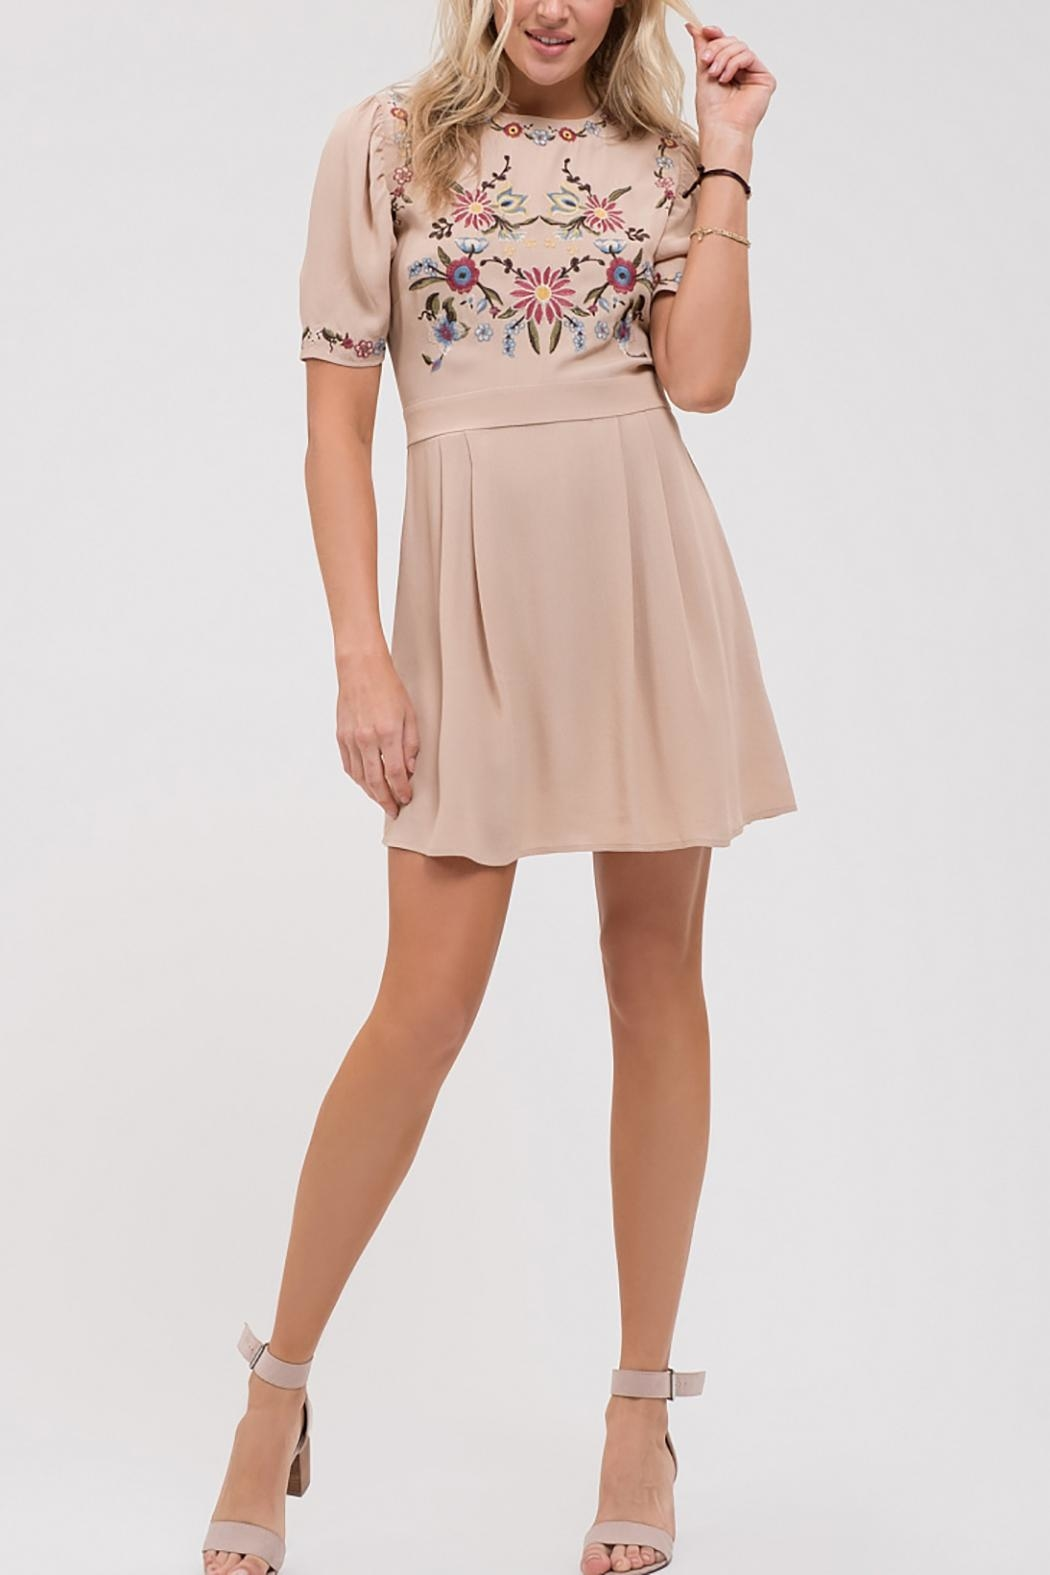 Blu Pepper Pleated Embroidered Dress - Main Image